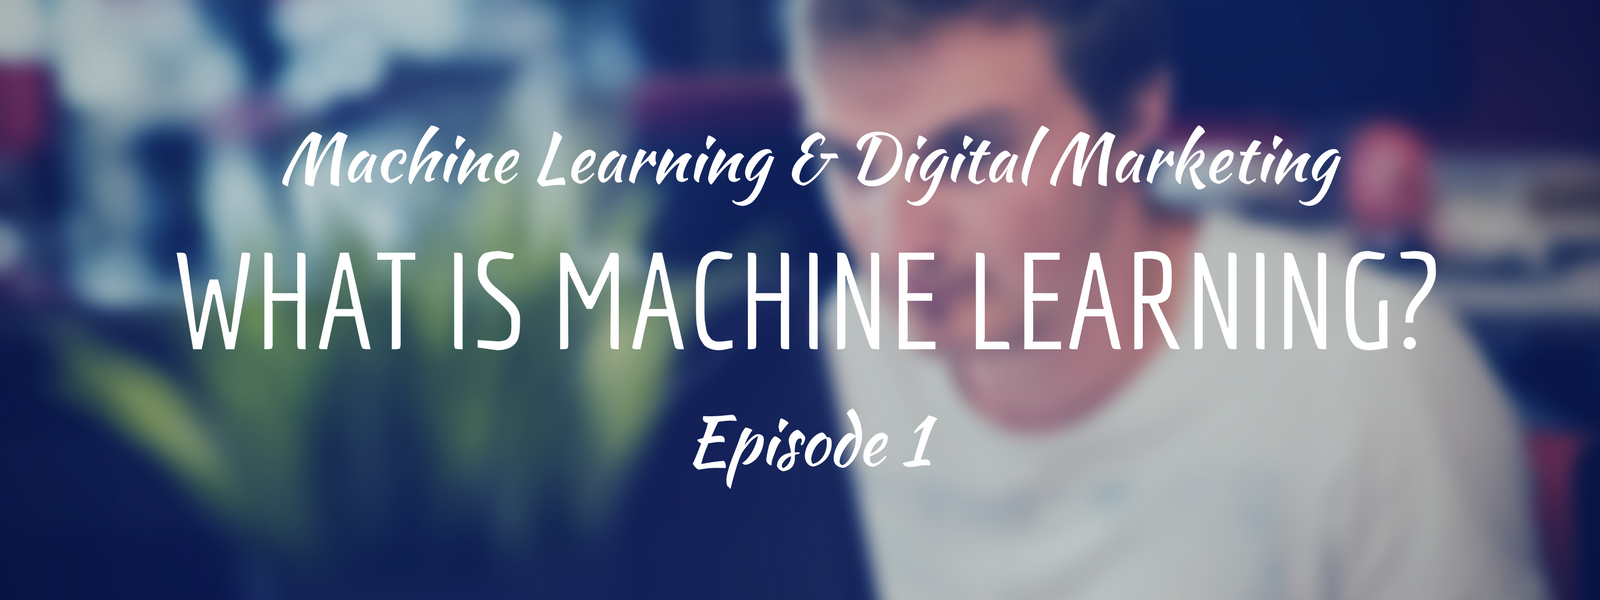 Machine Learning & Digital Marketing: What is Machine Learning?